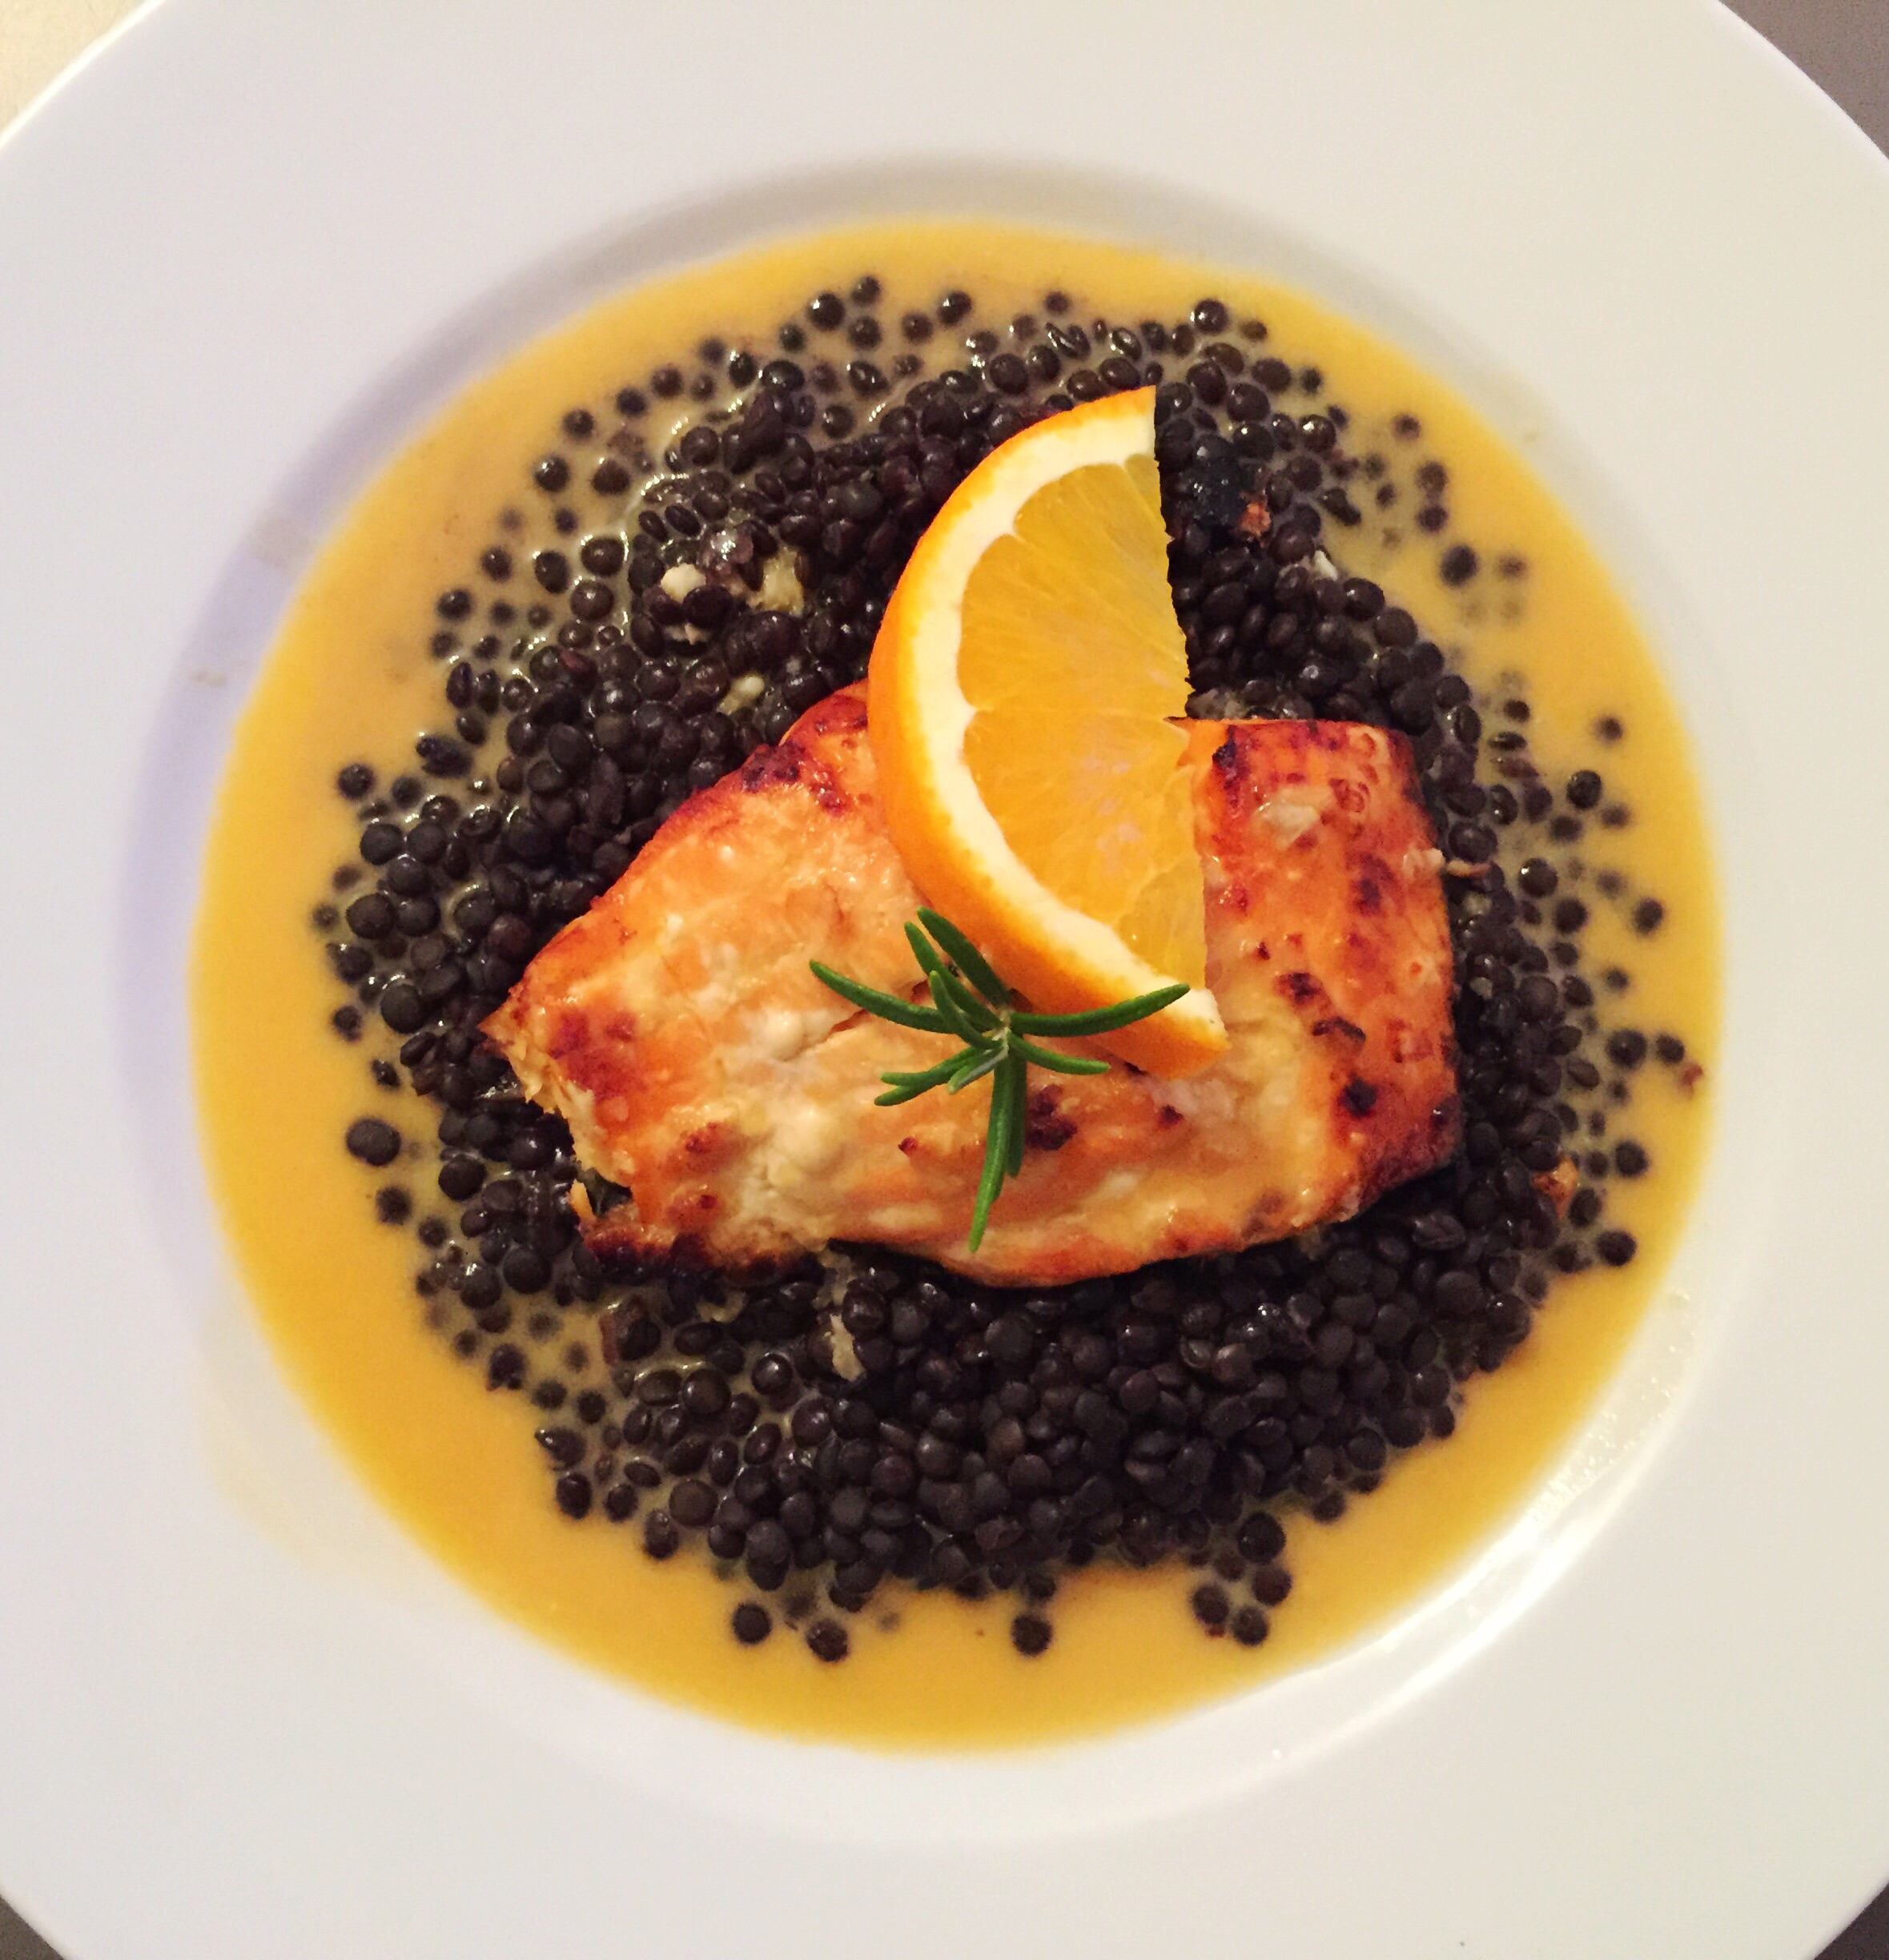 SALMON ON BELUGA LENTILS WITH ORANGE-COCONUT SAUCE